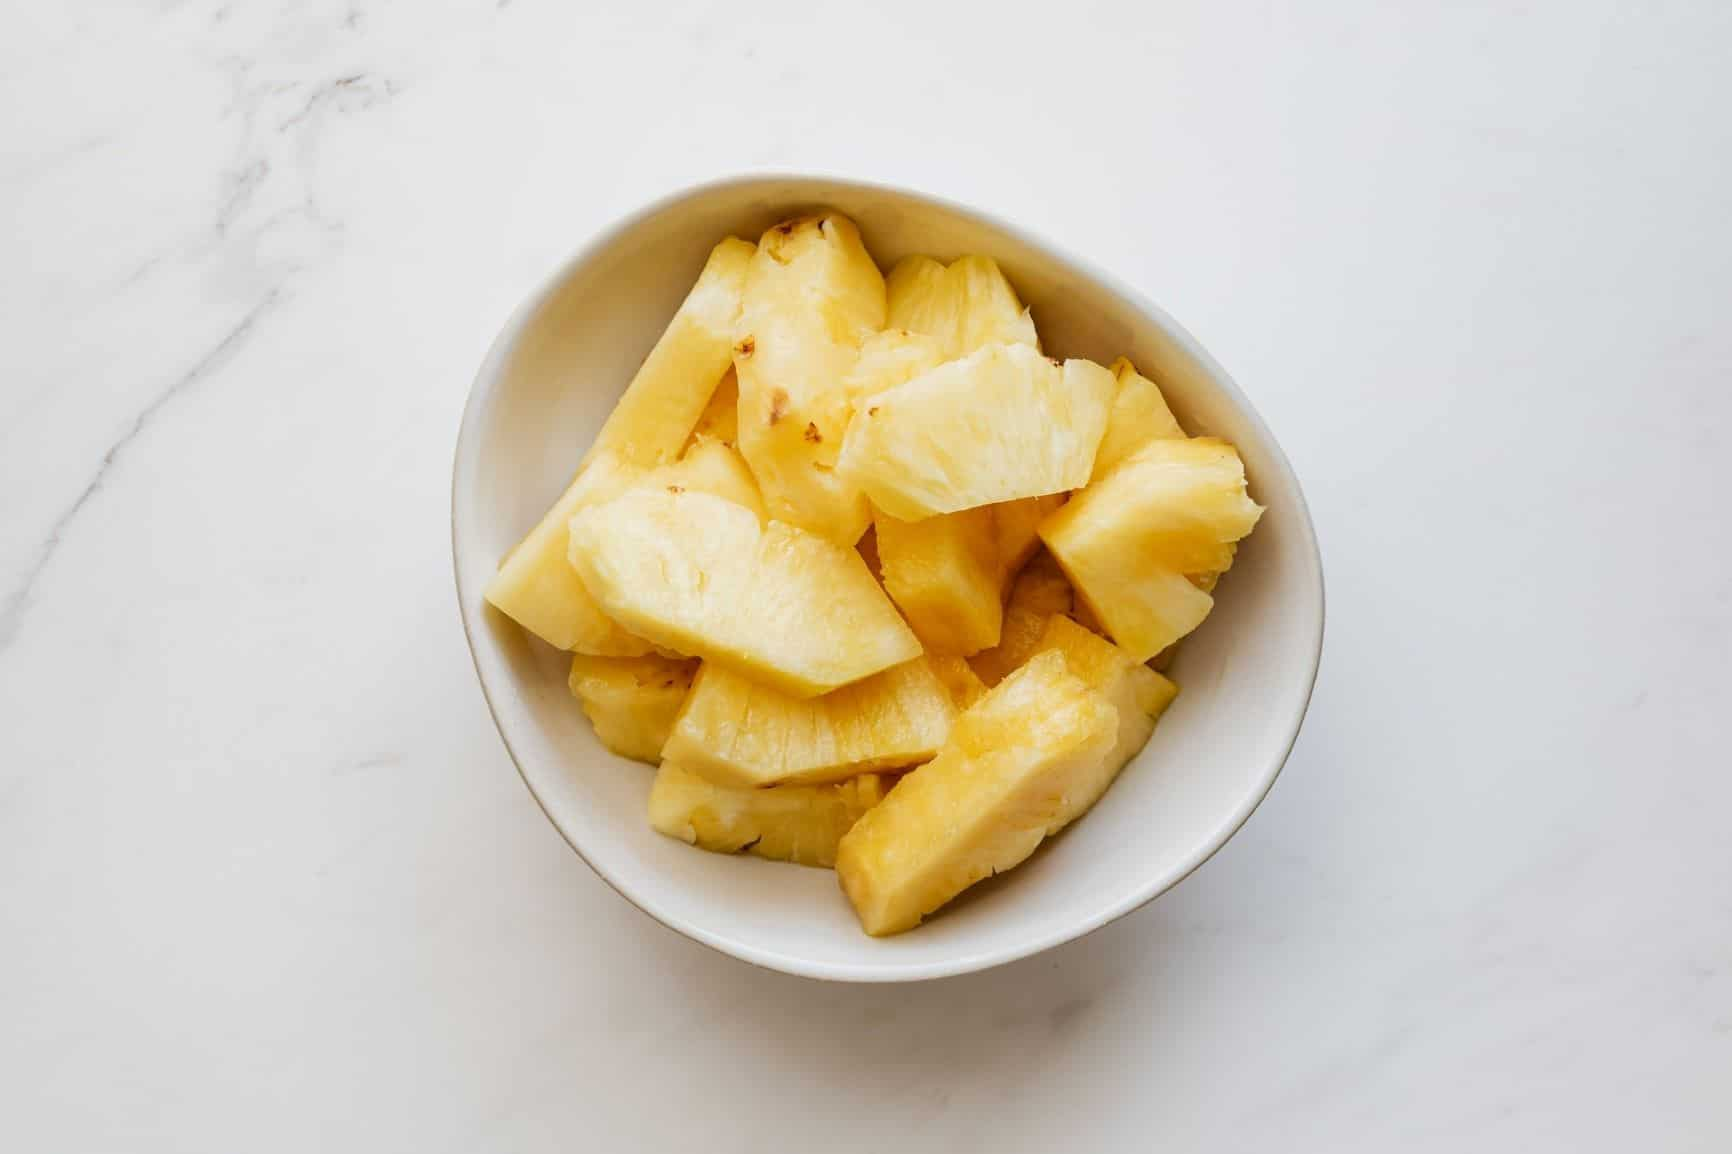 Pineapple slices in a bowl